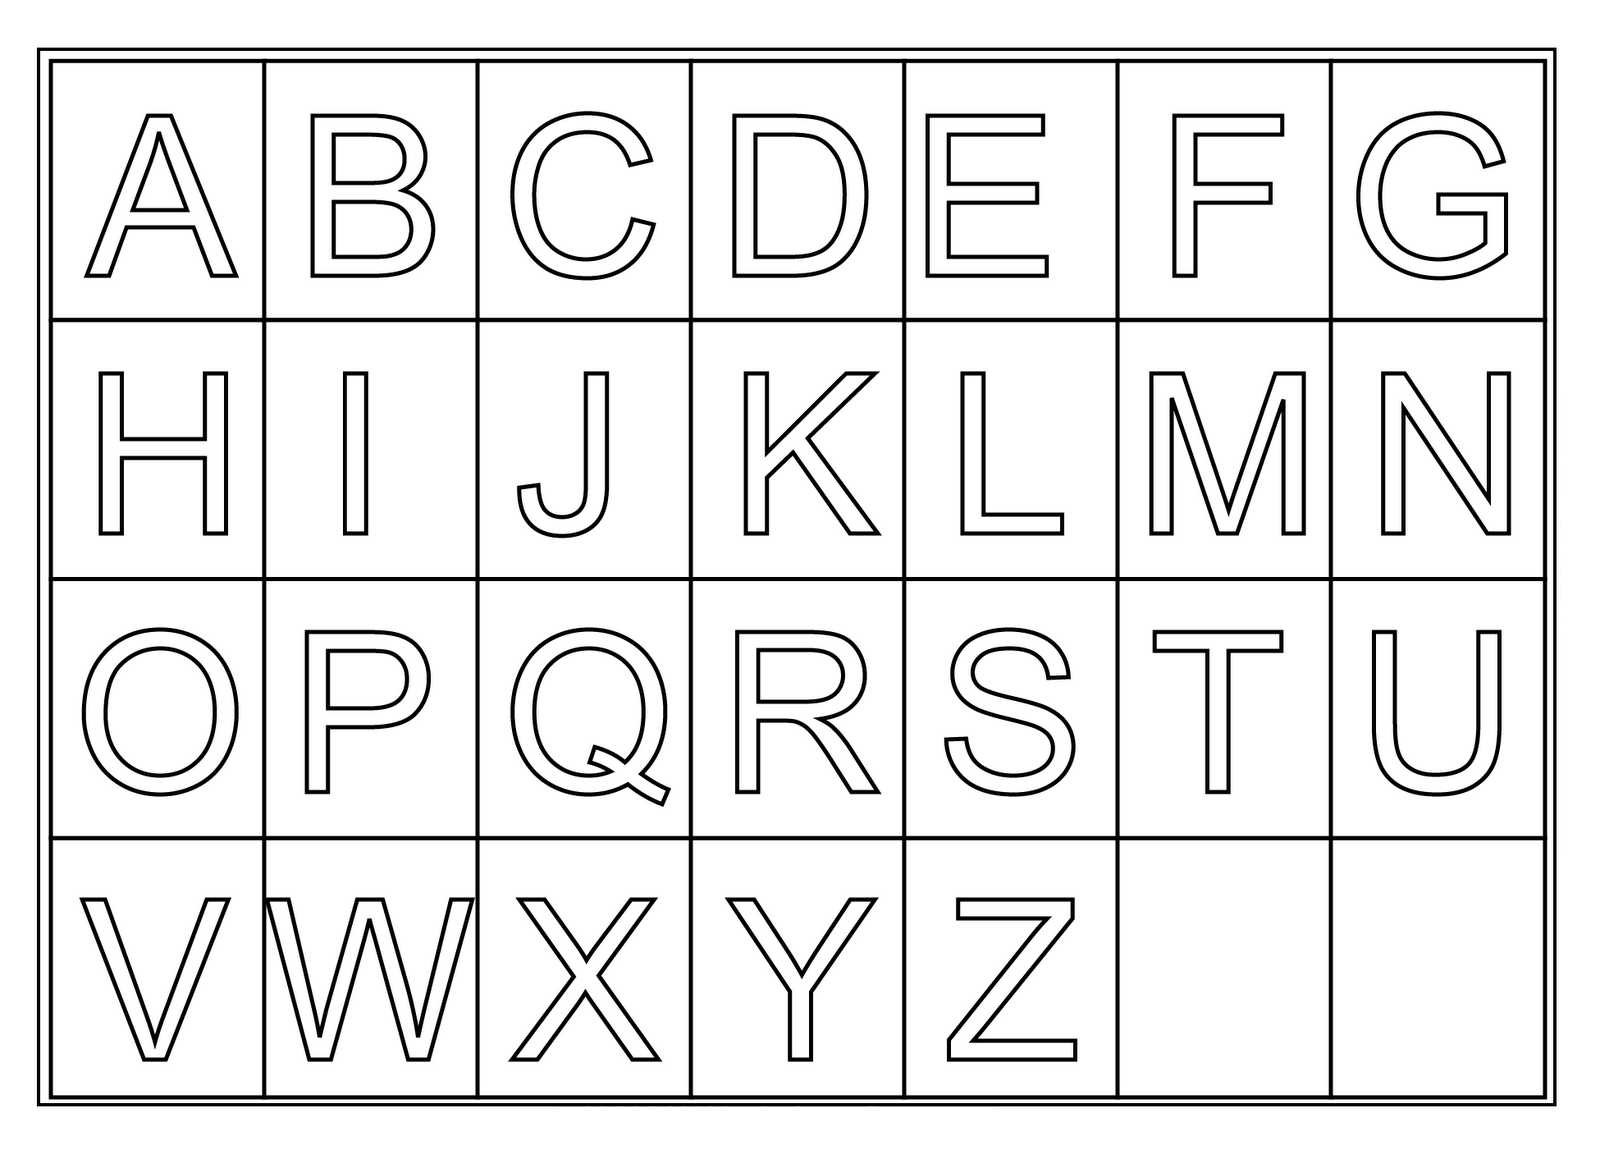 Worksheet Printable Alphabets Worksheets free printable worksheets alphabet letters intrepidpath preschool letter printables spelling